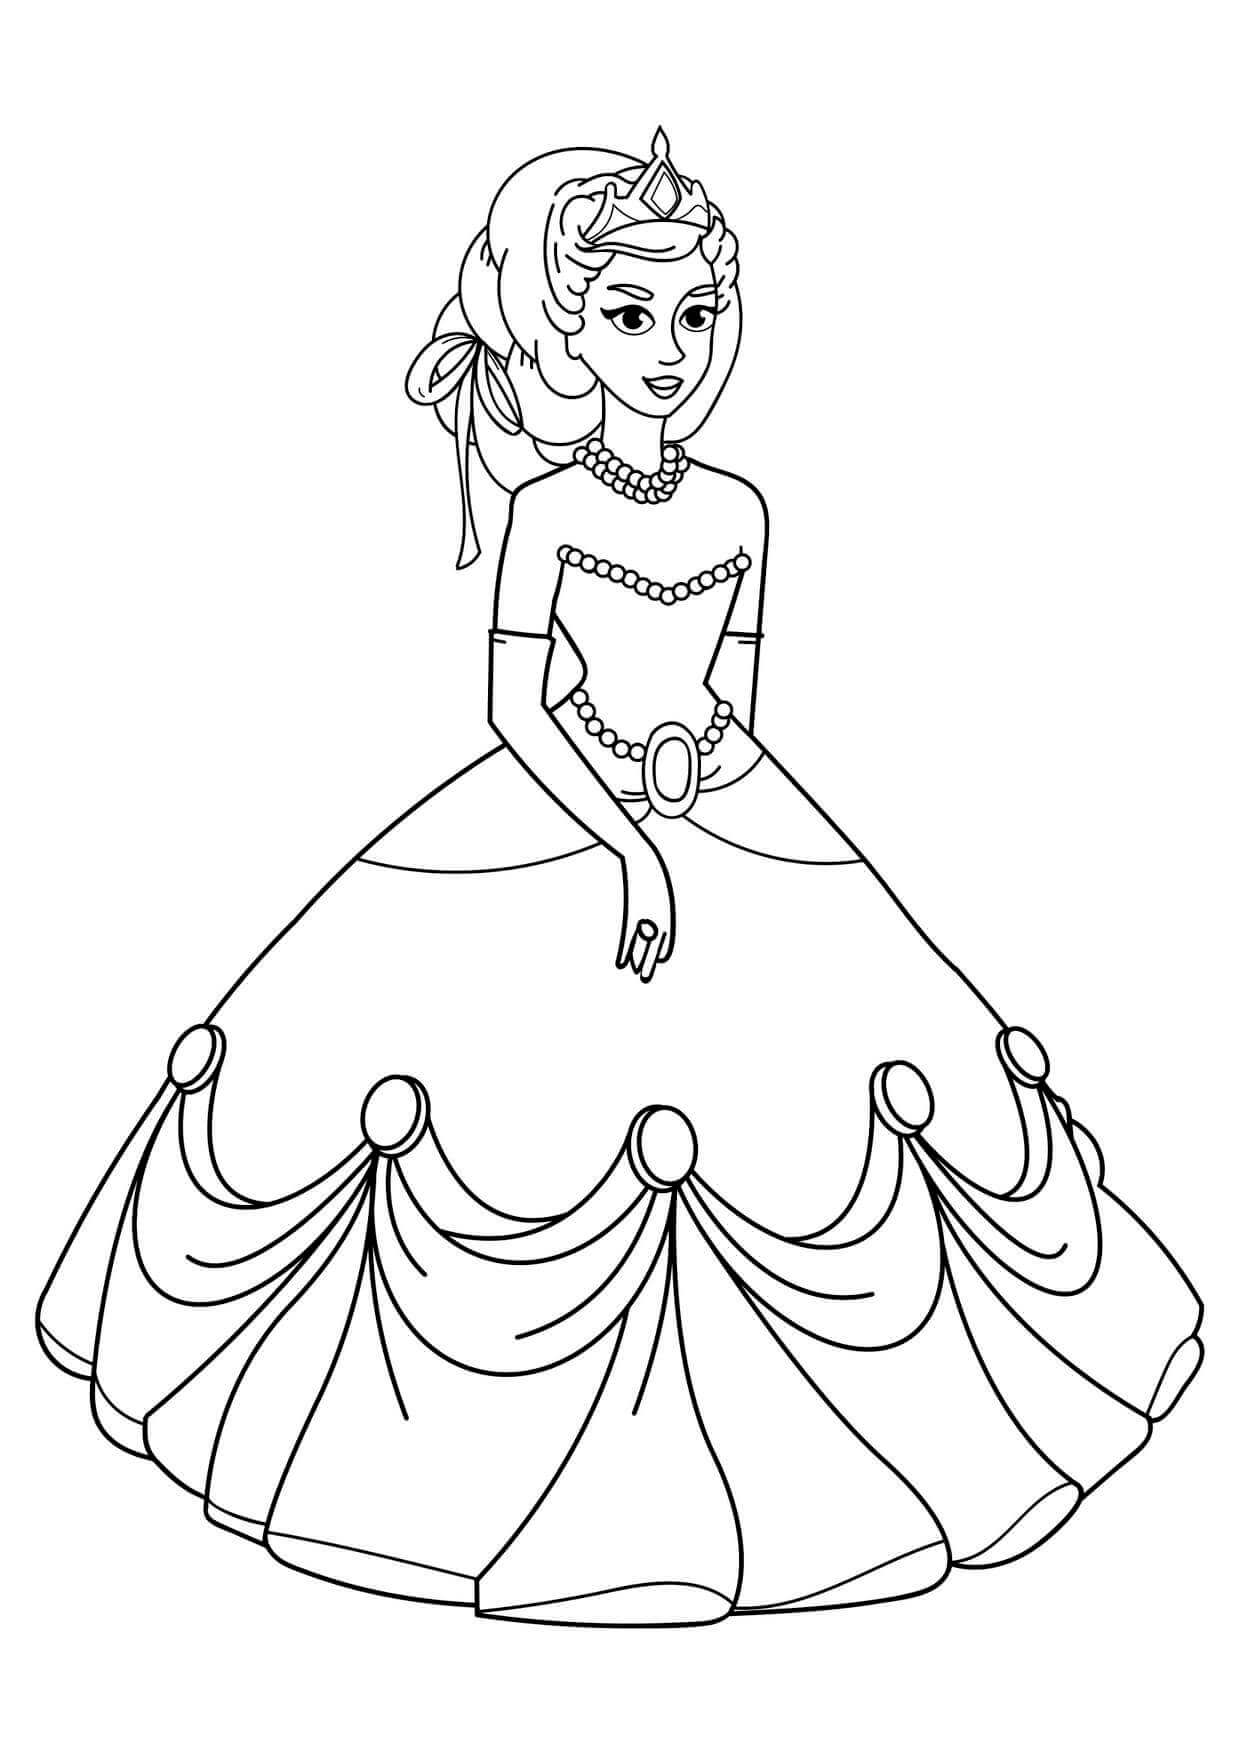 Free Printable Girls Coloring Pages